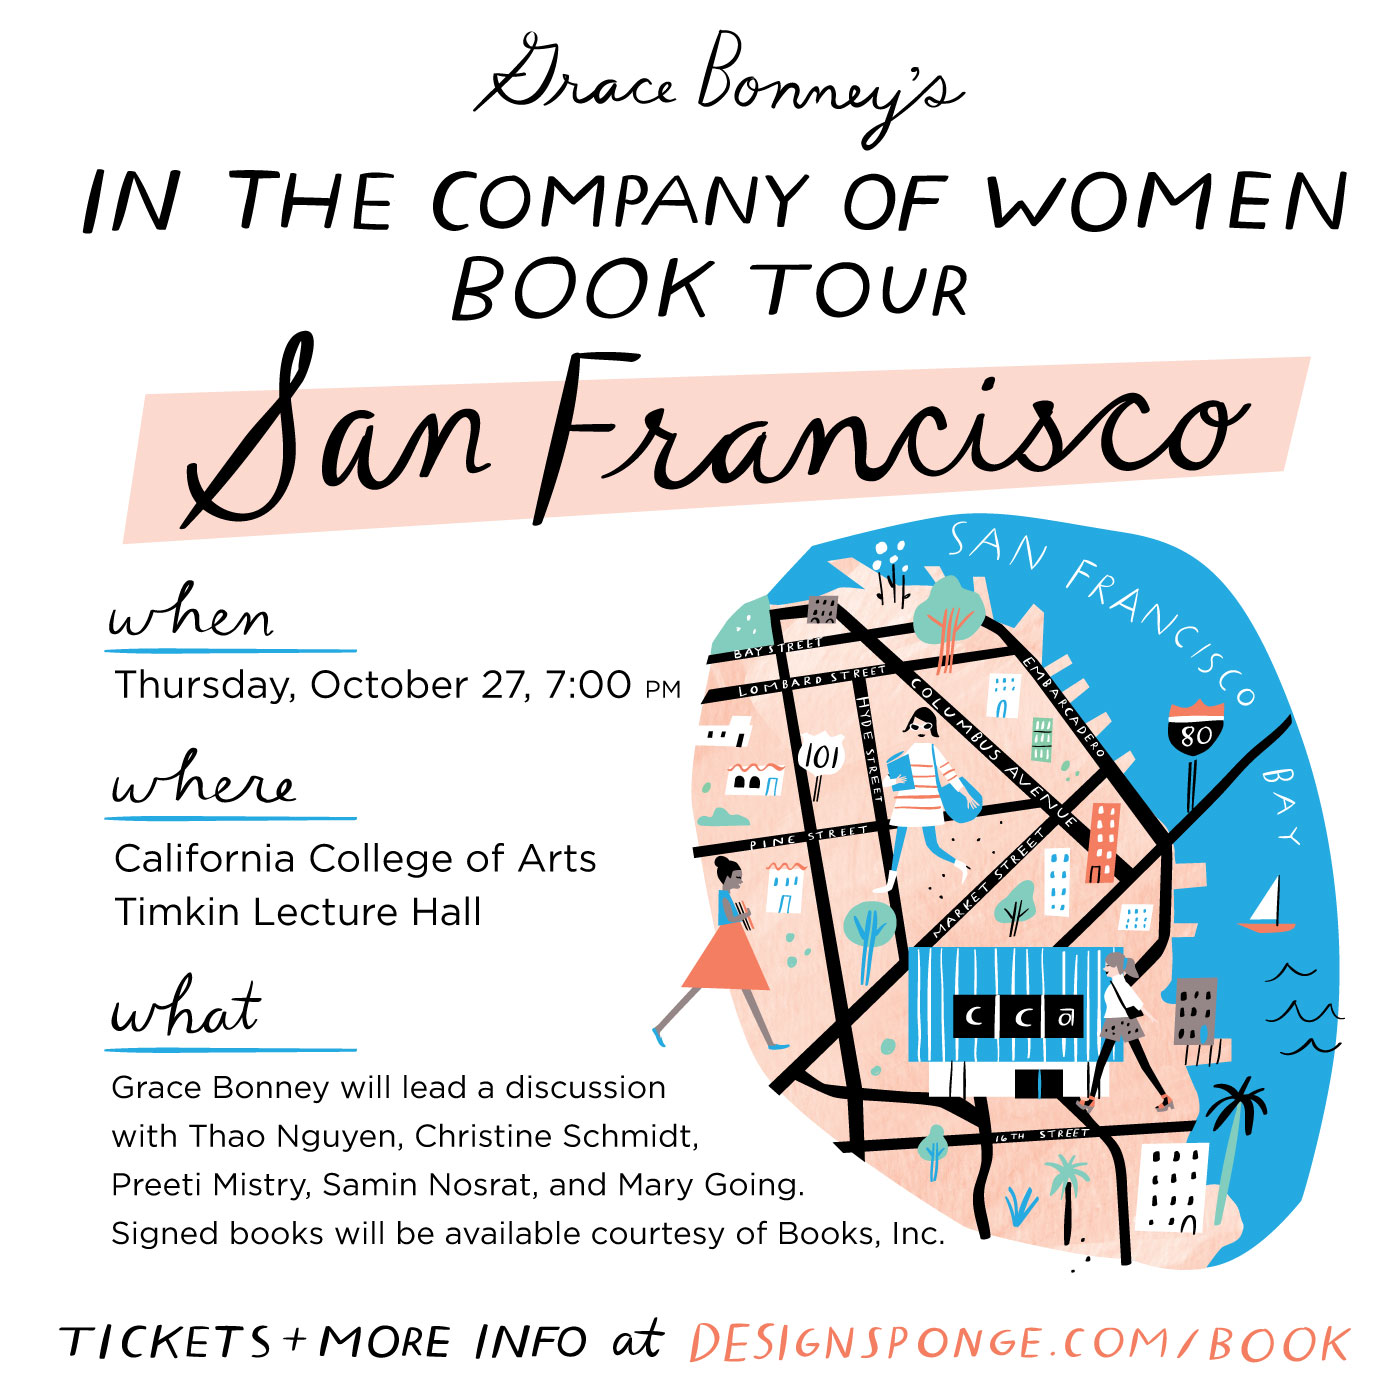 itcow_booktour_promos_cities_sanfran